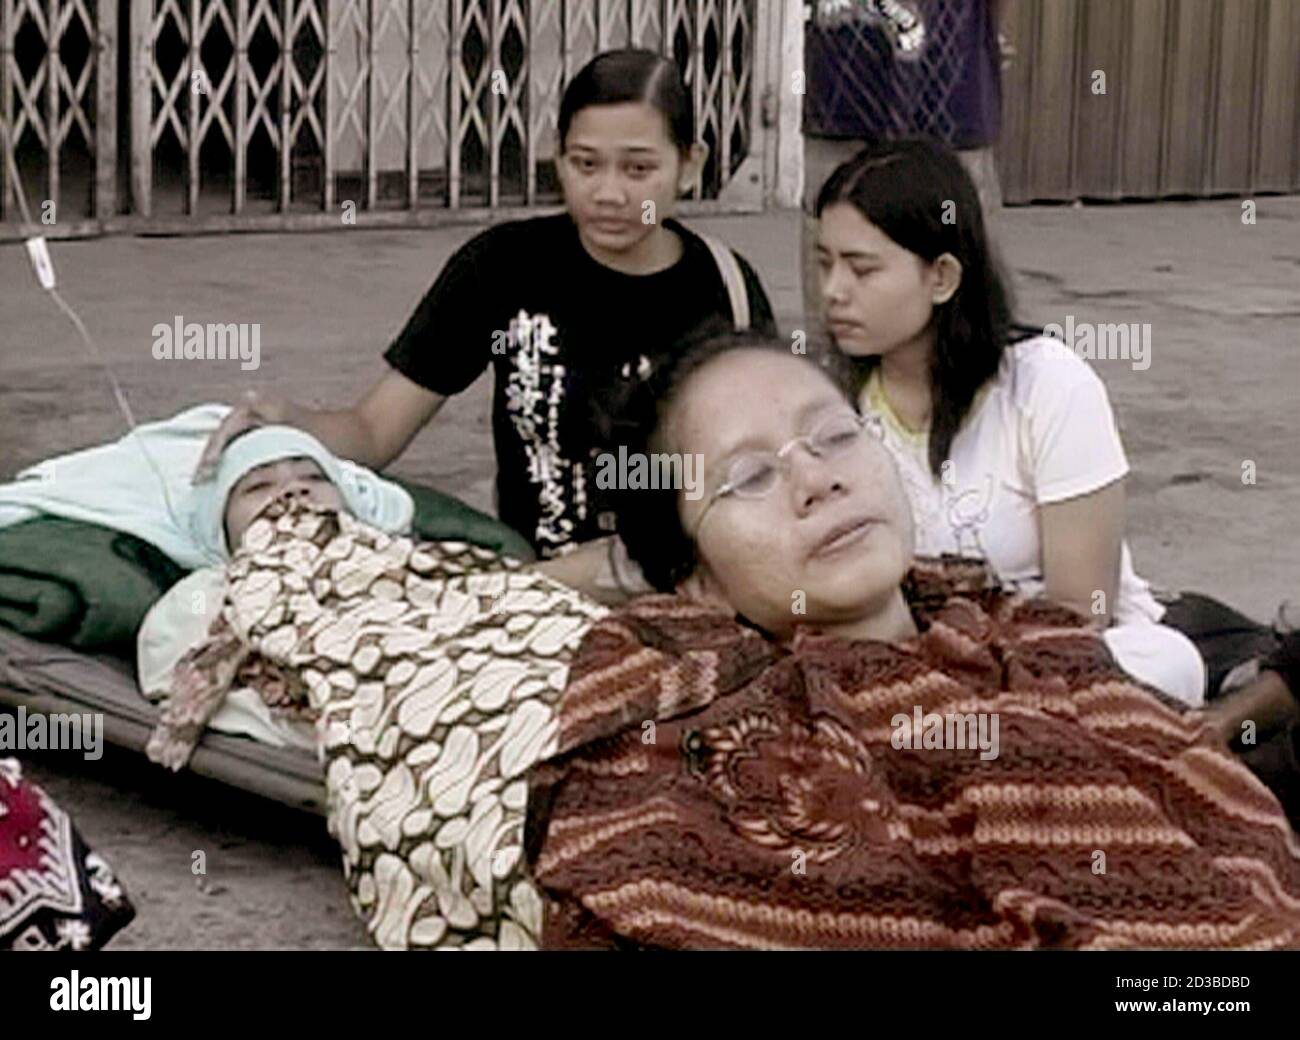 An Image Made Available On February 1 2005 Taken From Television Footage Shows Acehnese In Need Of Medical Attention Following The Devastating Earthquake On December 26 2004 In Banda Aceh And Before